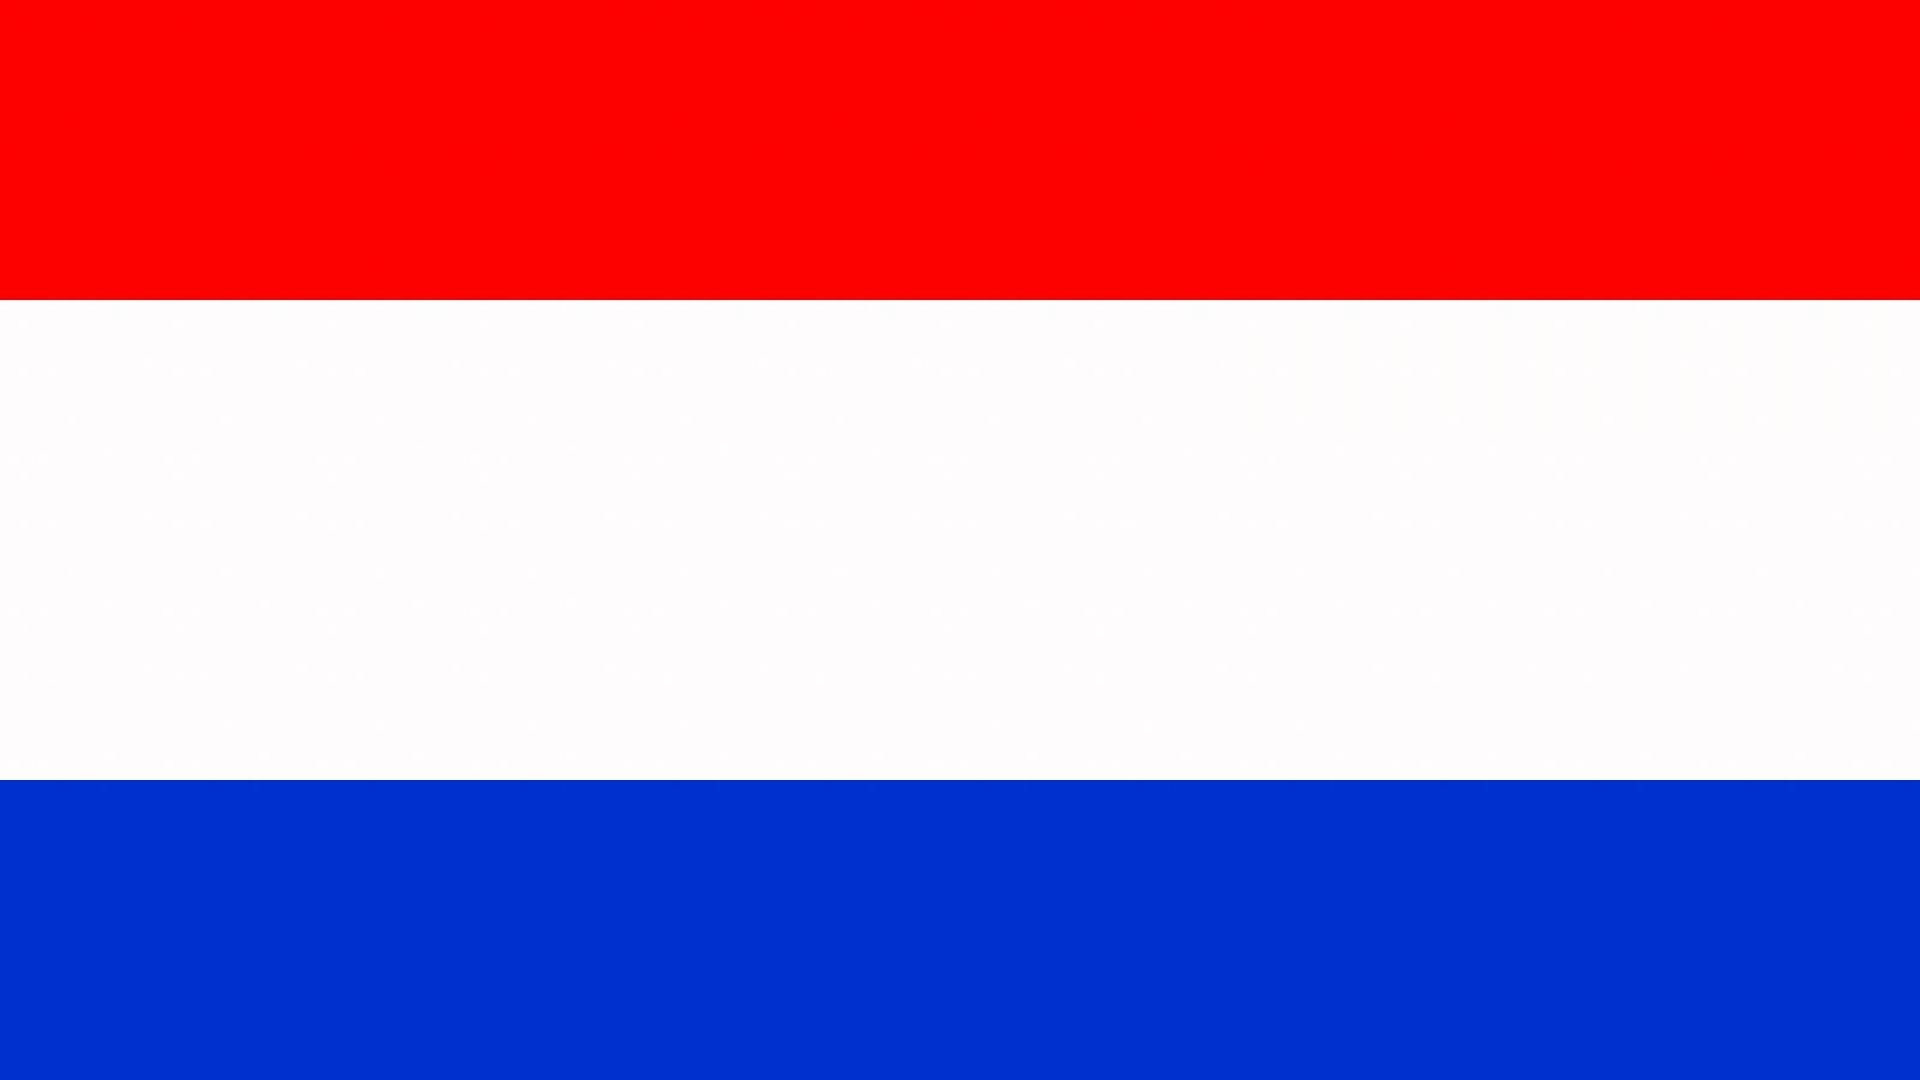 1920x1080 Netherlands Flag - Wallpaper, High Definition, High Quality ...